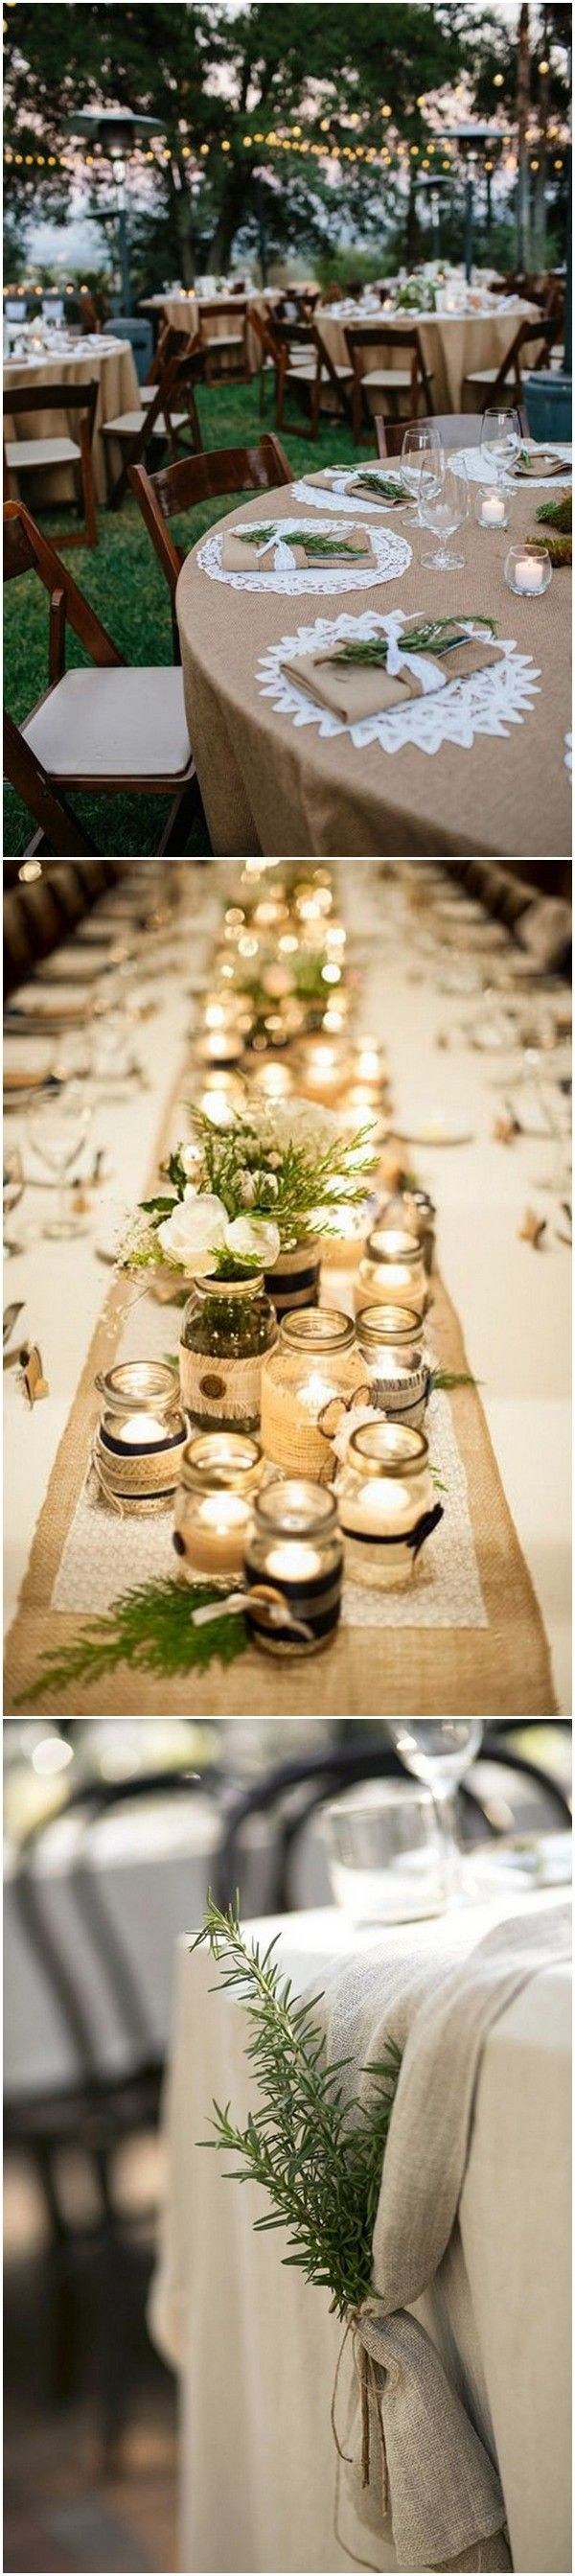 Diy wedding table decorations ideas   Brilliant Wedding Table Decoration Ideas  Page  of   Burlap